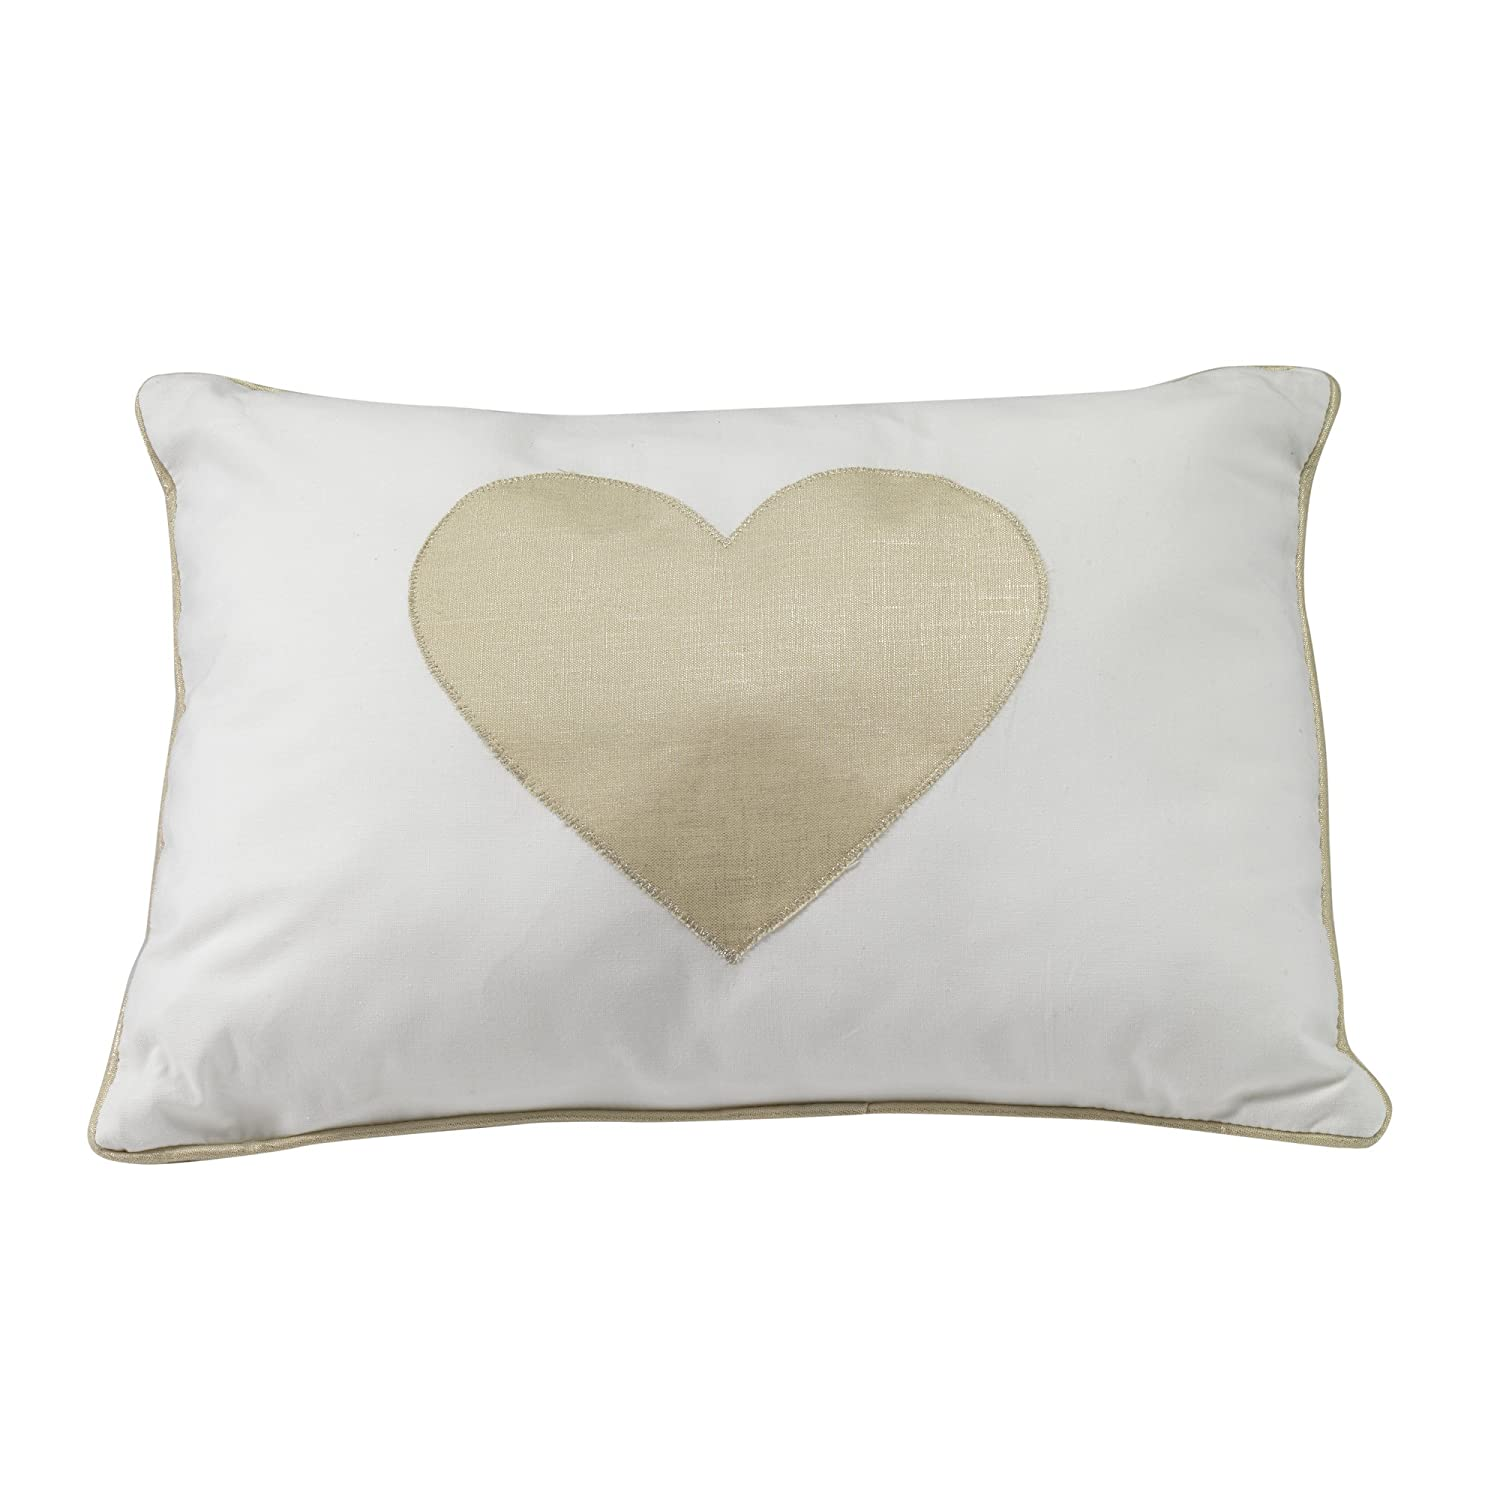 Lambs Ivy Pillow Latest item New Shipping Free Shipping Dawn